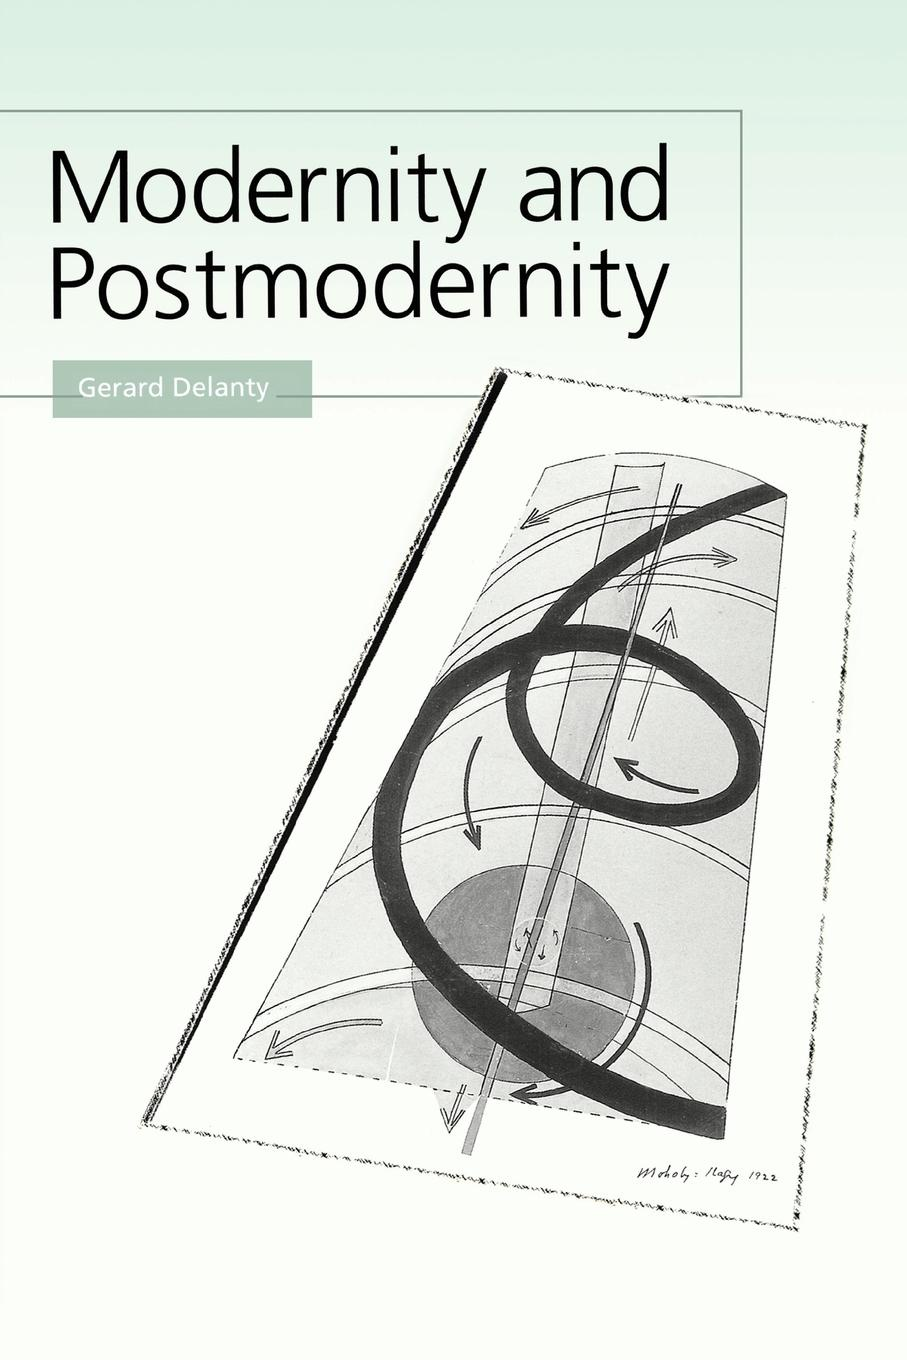 Gerard Delanty Modernity and Postmodernity. Knowledge, Power and the Self capitalism and modernity the great debate